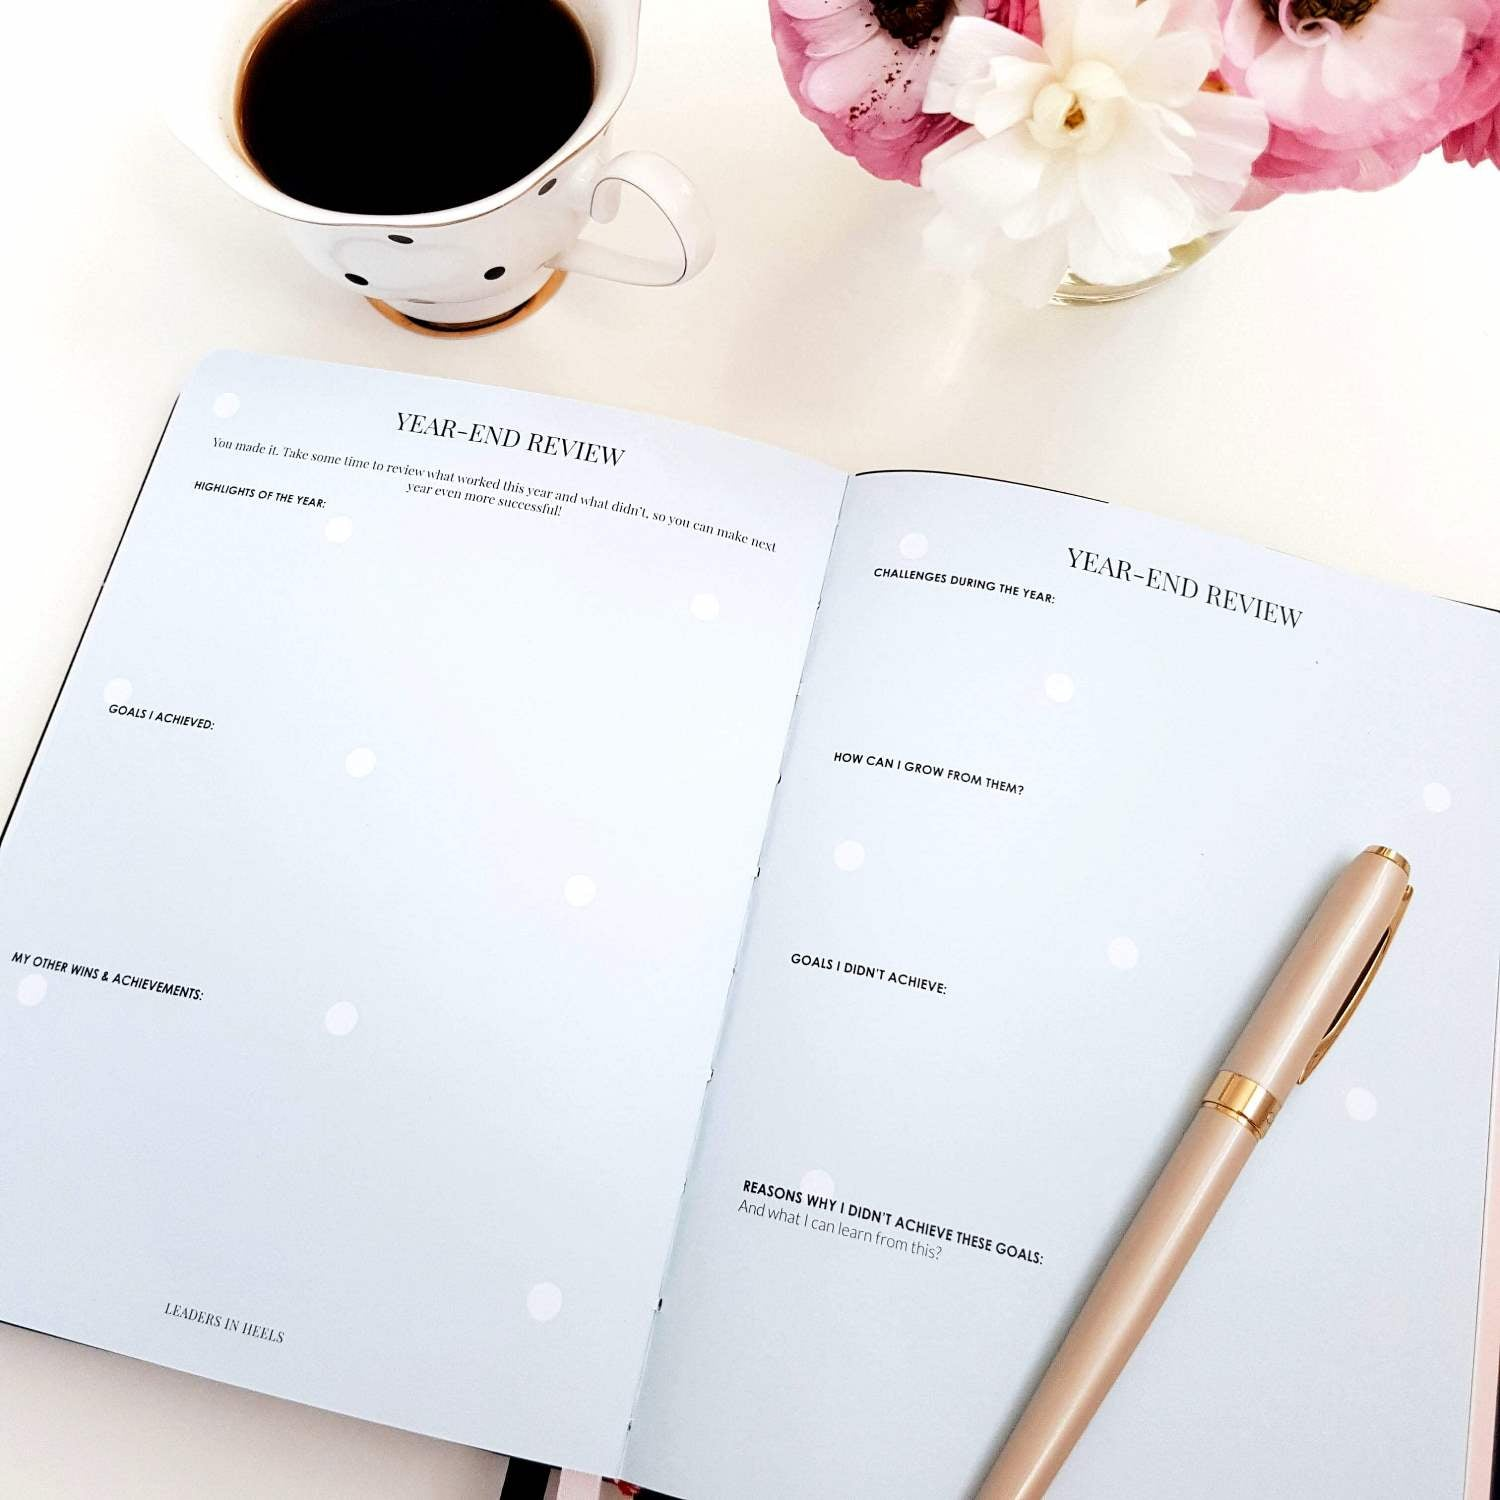 Leaders in Heels Planner – Phenomenal Woman, TAN